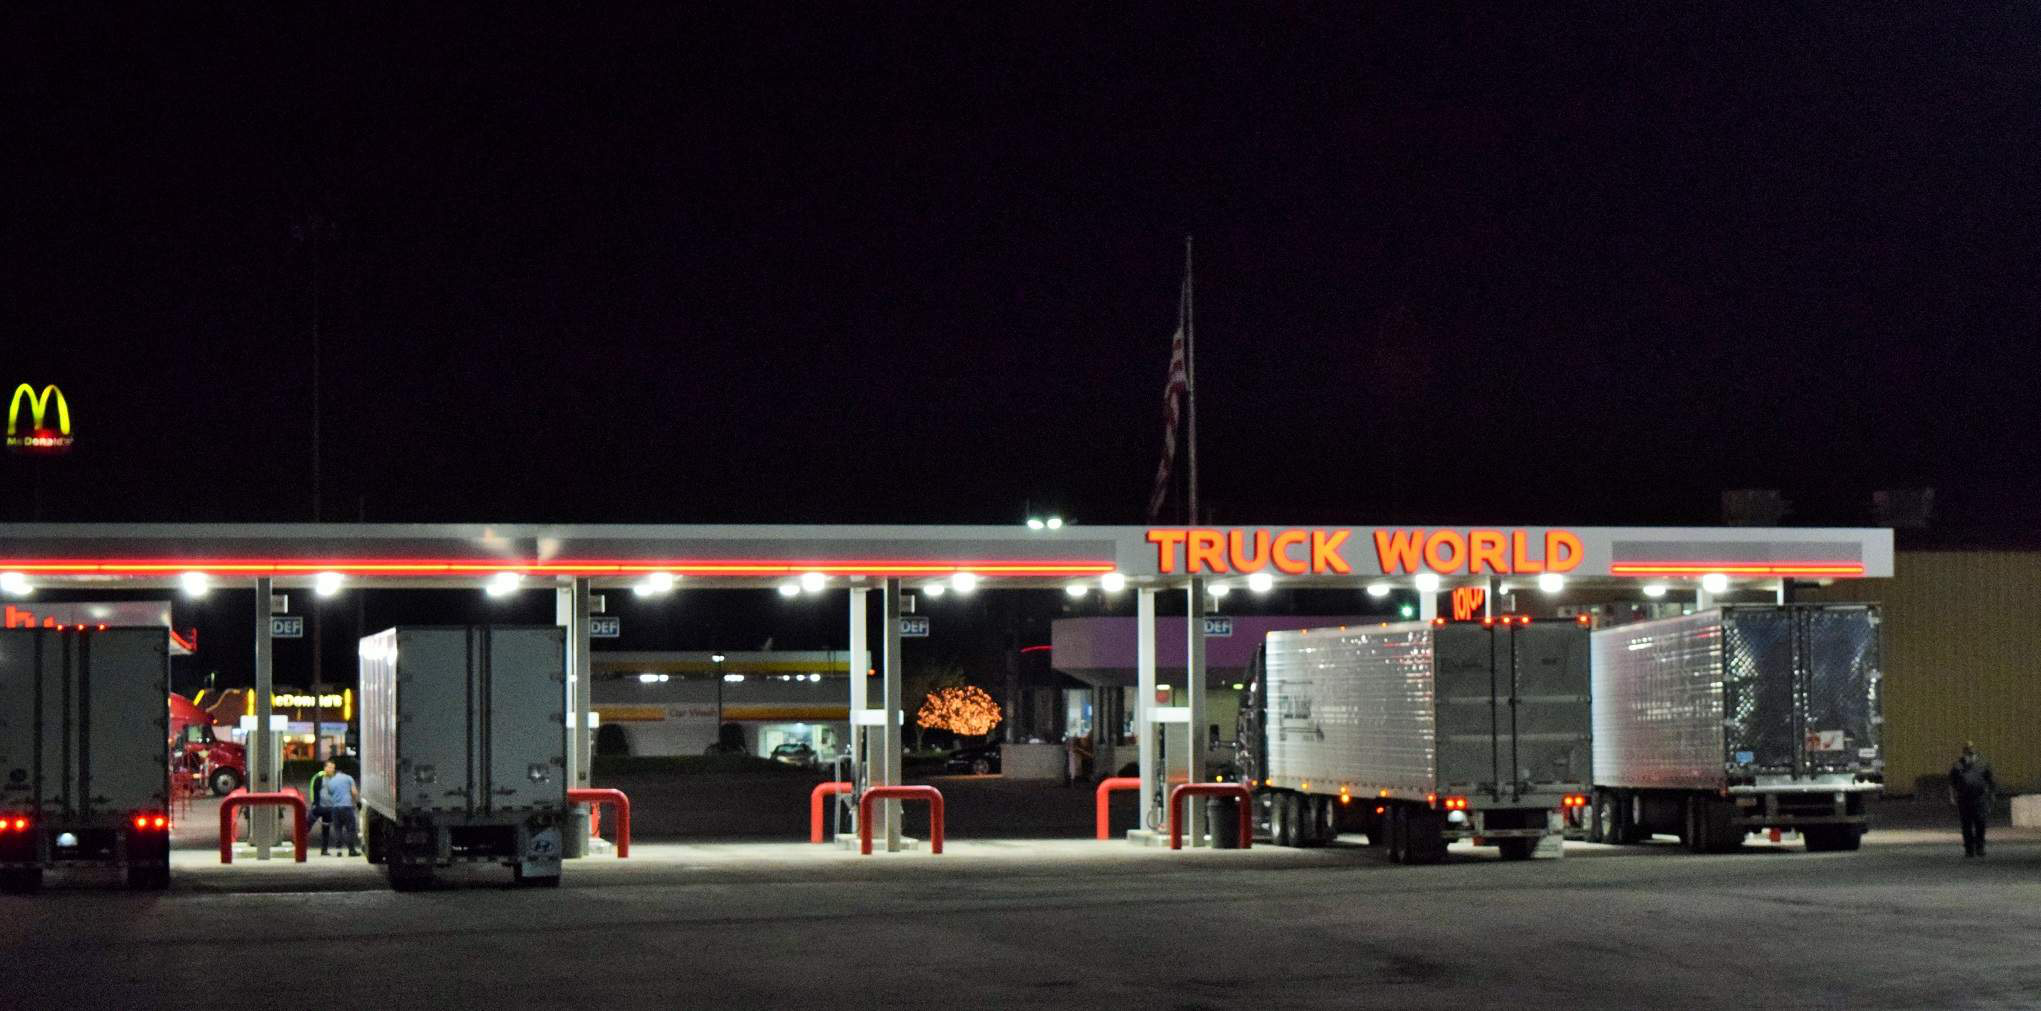 I got the opportunity two weeks back to visit the truck world stop in hubbard ohio just east of youngstown a full featured place with all manner of